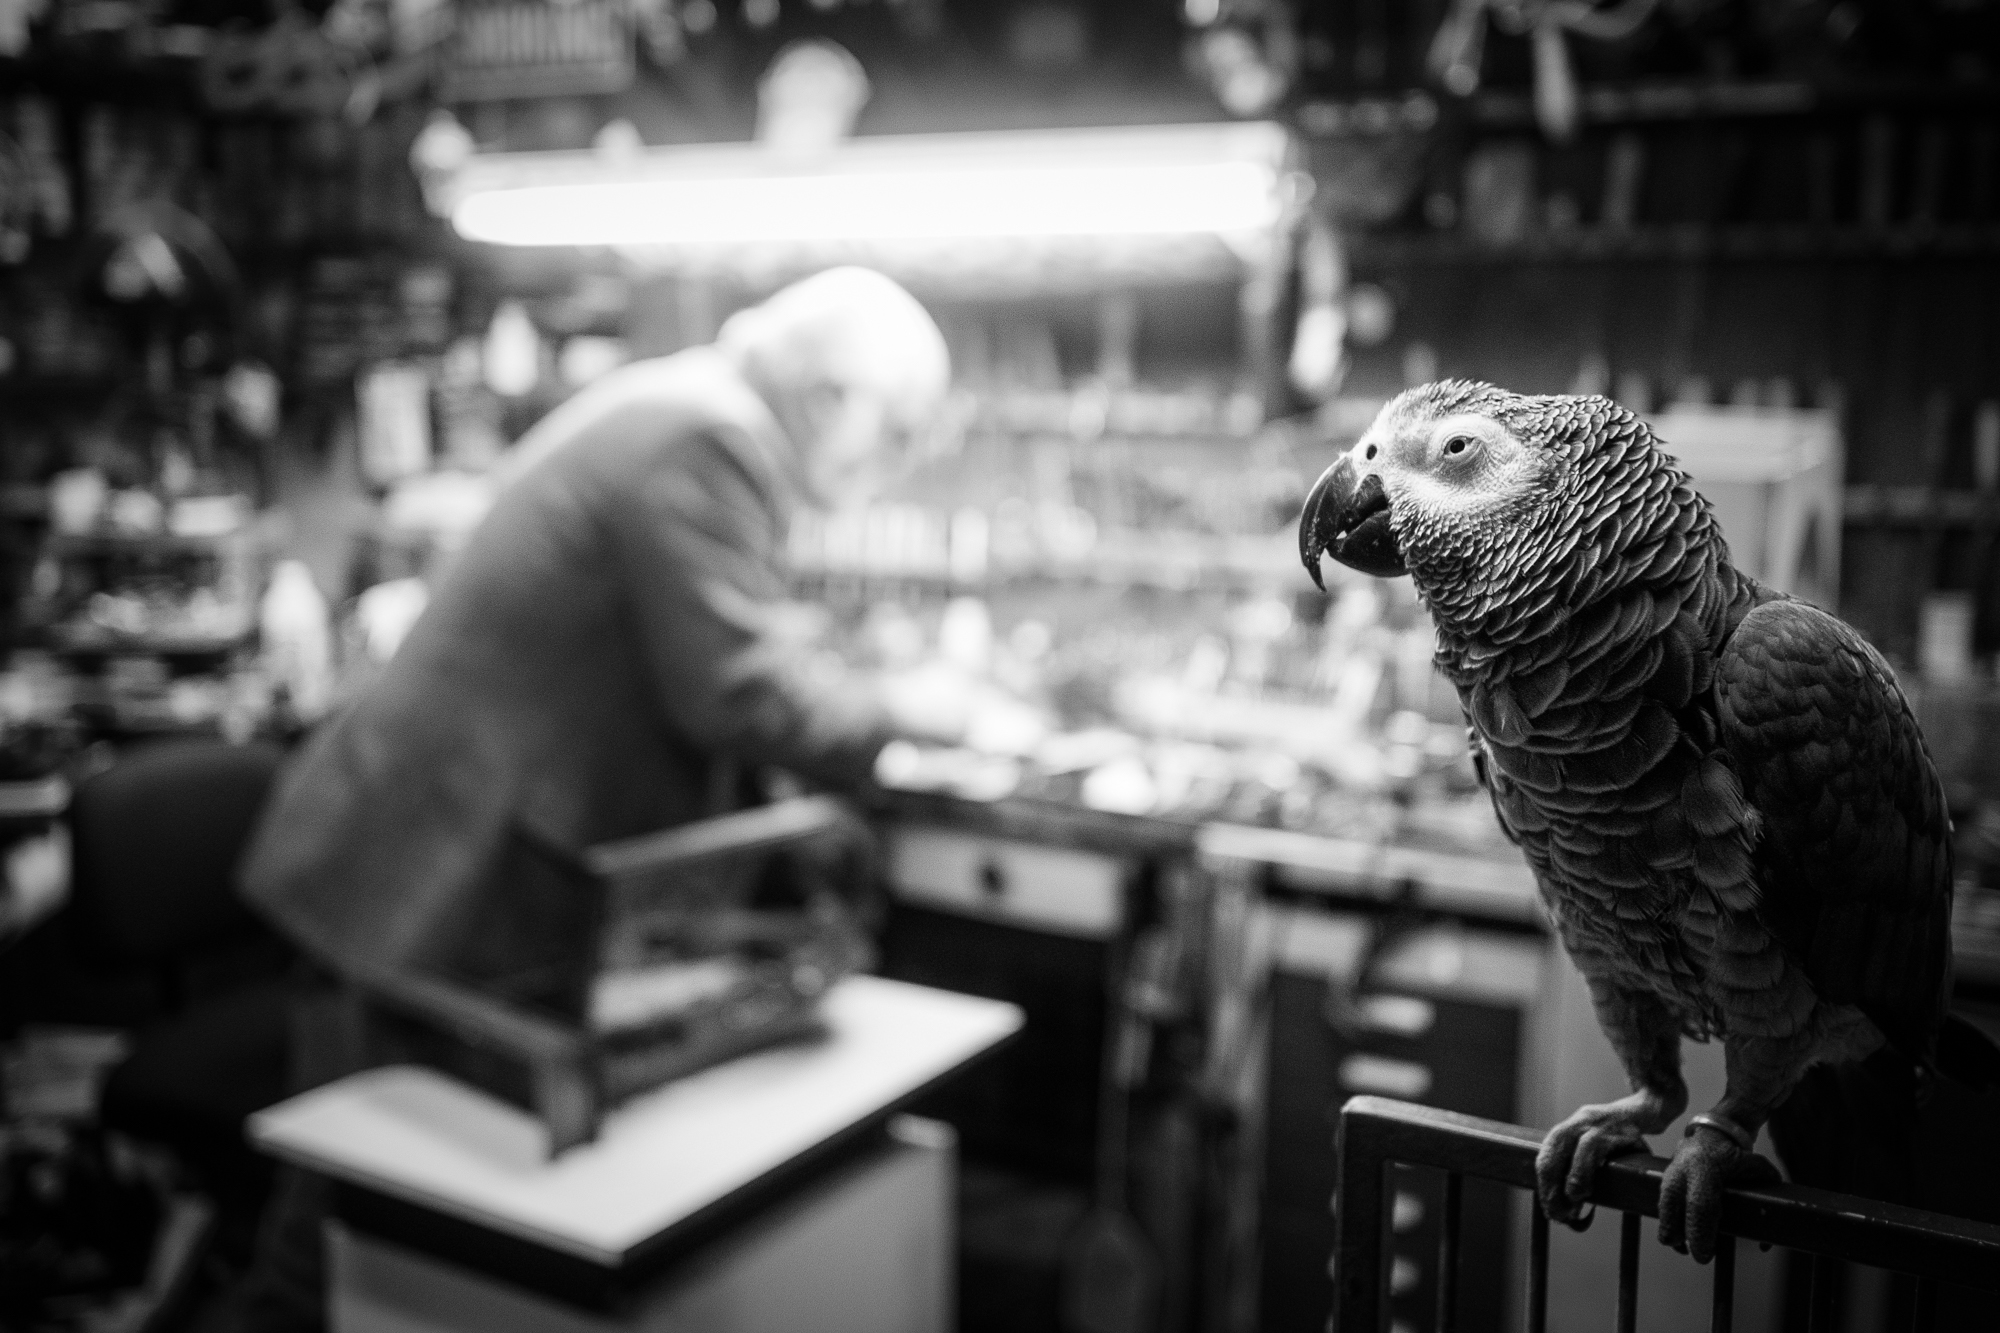 Darling, the gray parrot